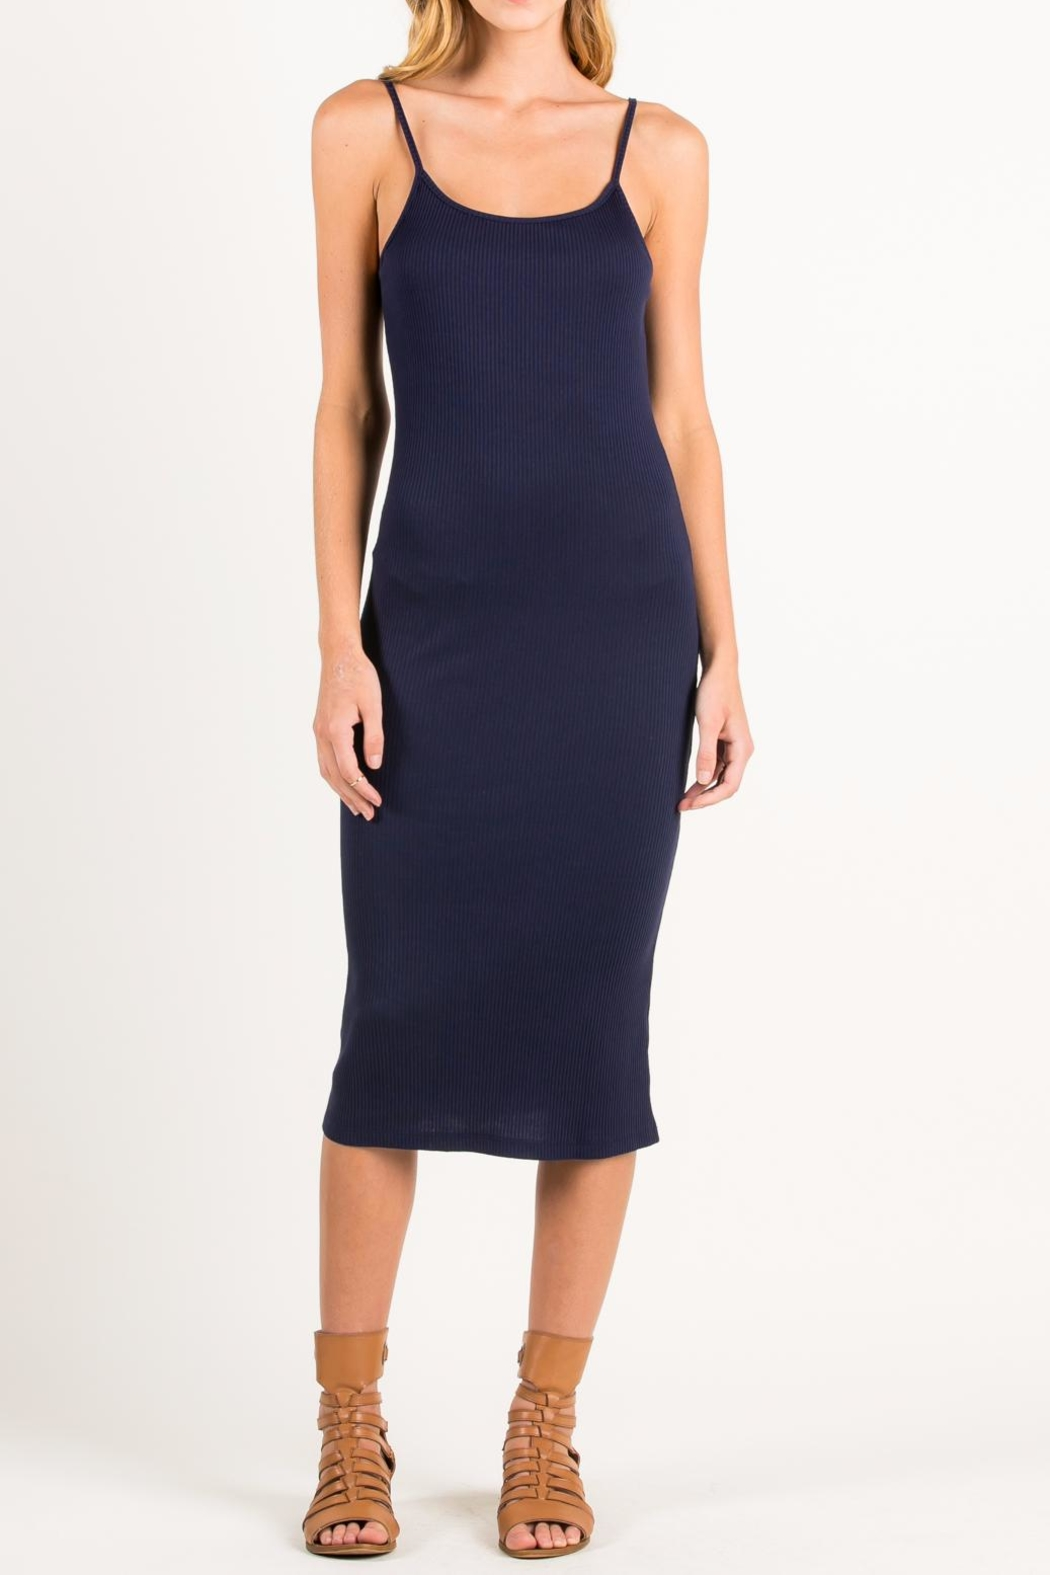 Hanger Navy Midi Dress - Front Cropped Image